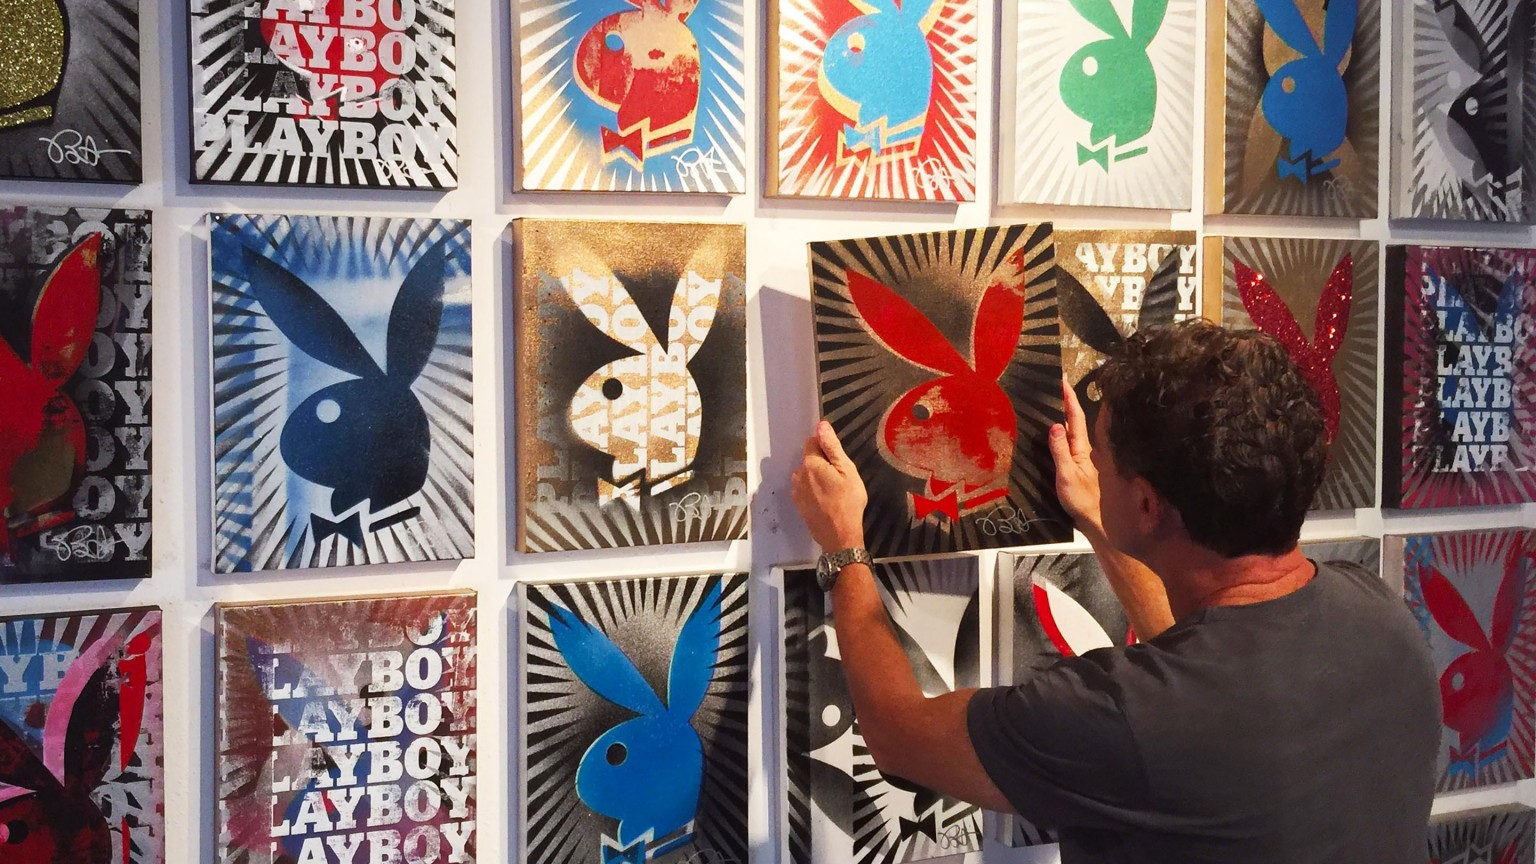 Step Inside 'Painting Playboy' by Pop Artist Icon Burton Morris